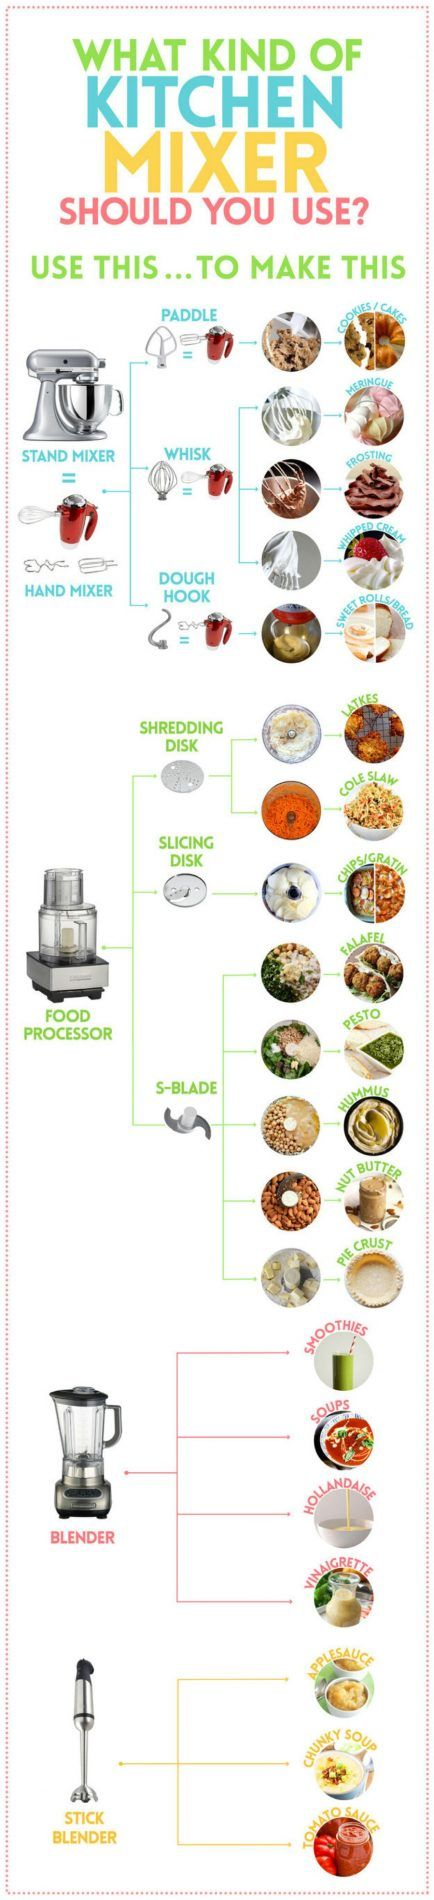 60 Professional Cooking Diagrams and Charts That Simplify Cooking